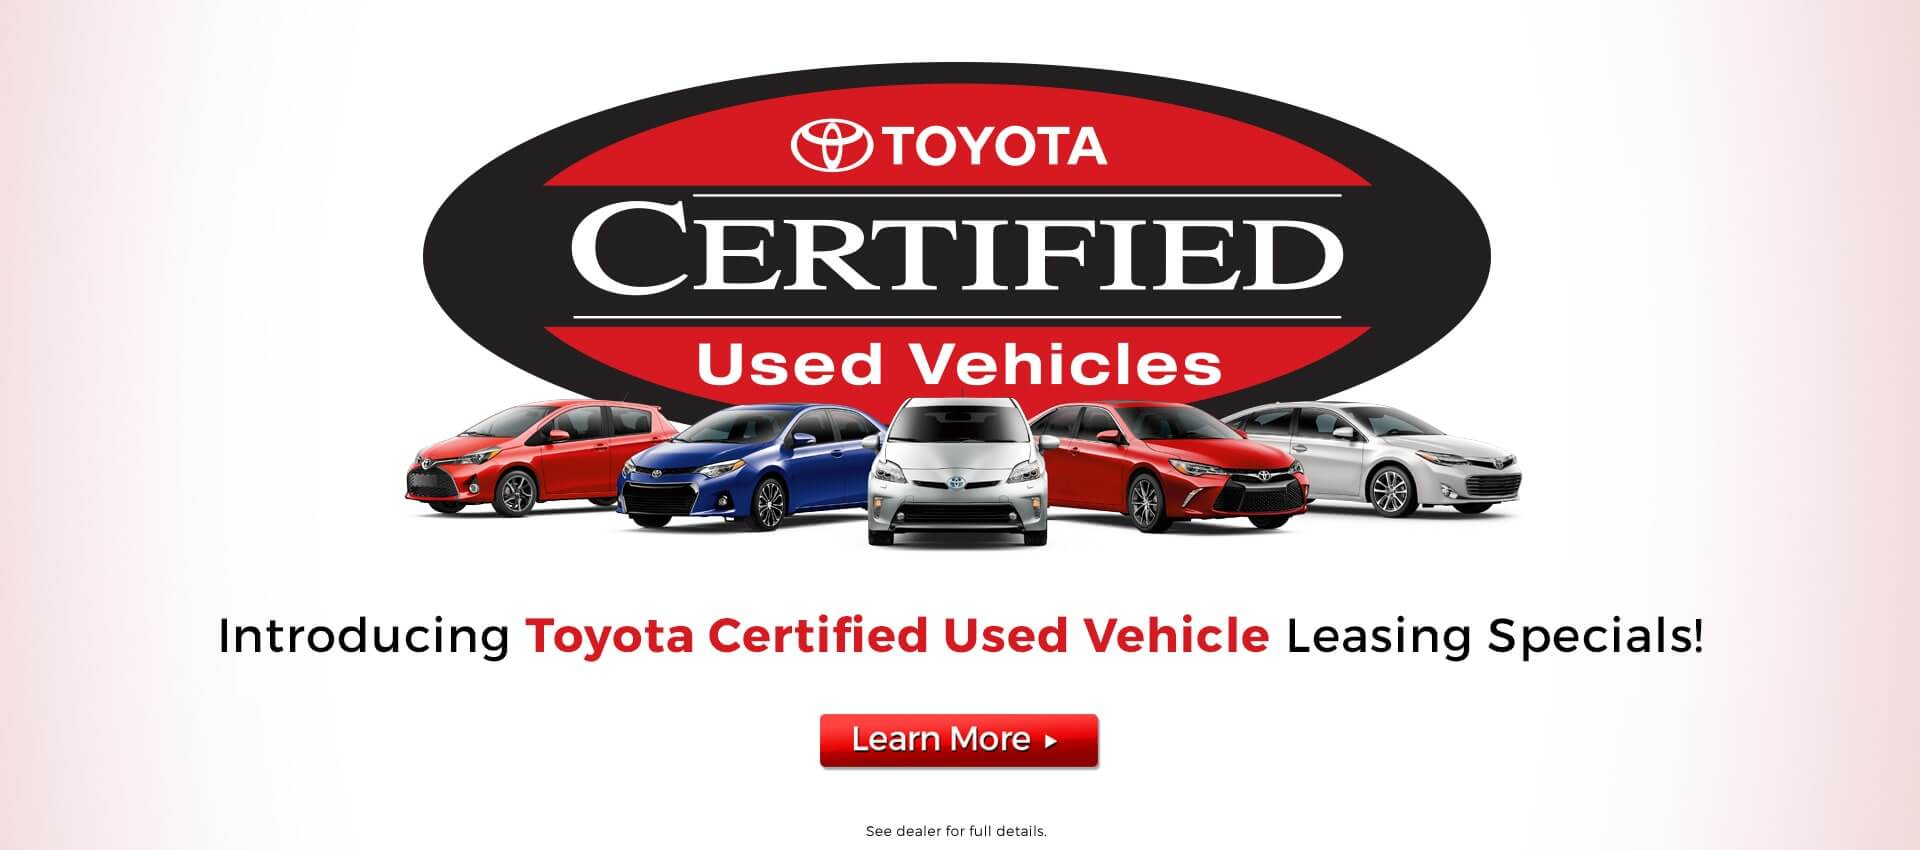 Toyota Certified Used Vehicles Right Toyota